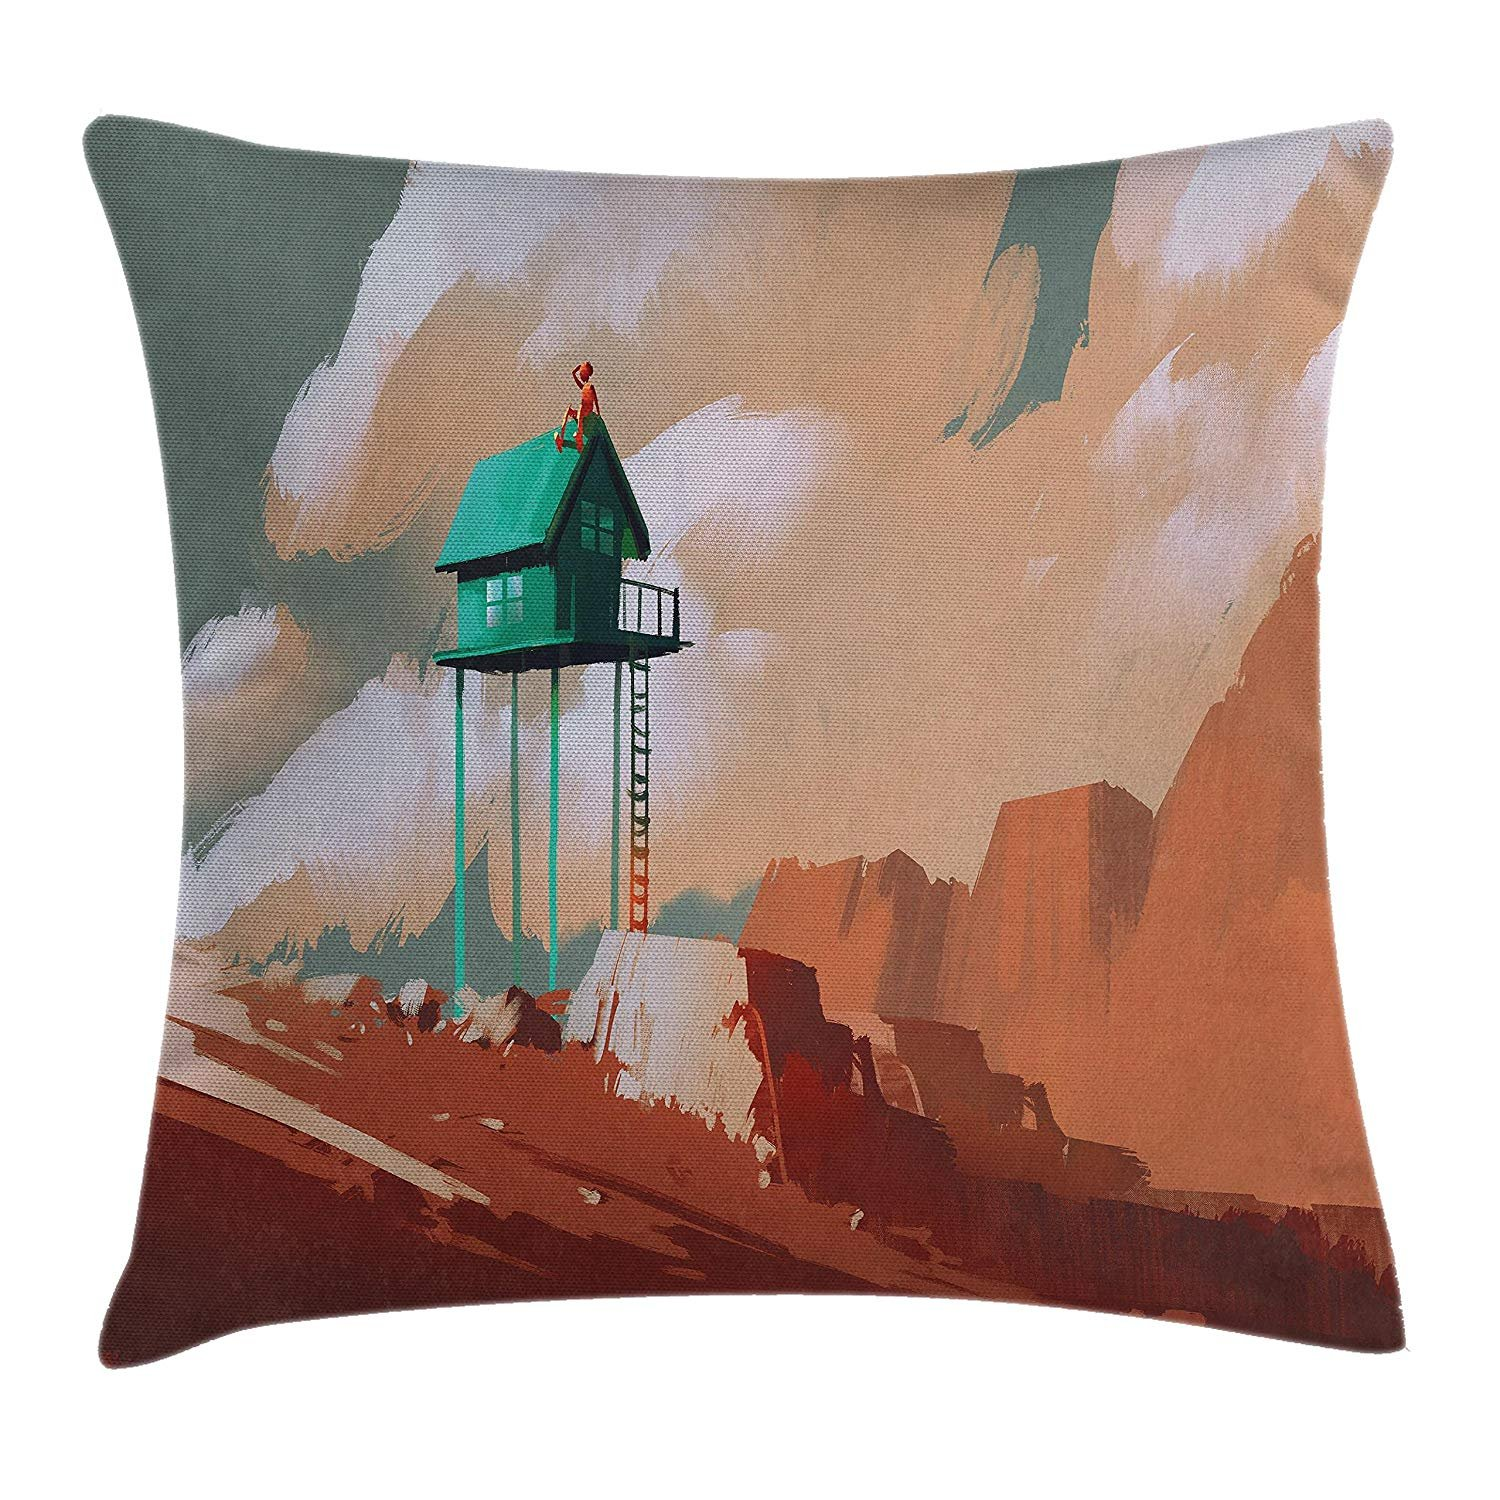 Queen Area Fantasy House Decor Little Wood House on Stone Hill Boy on the Cloudy Roofprint Square Throw Pillow Covers Cushion Case Sofa Bedroom Car 18x18 Inch, Tan Green